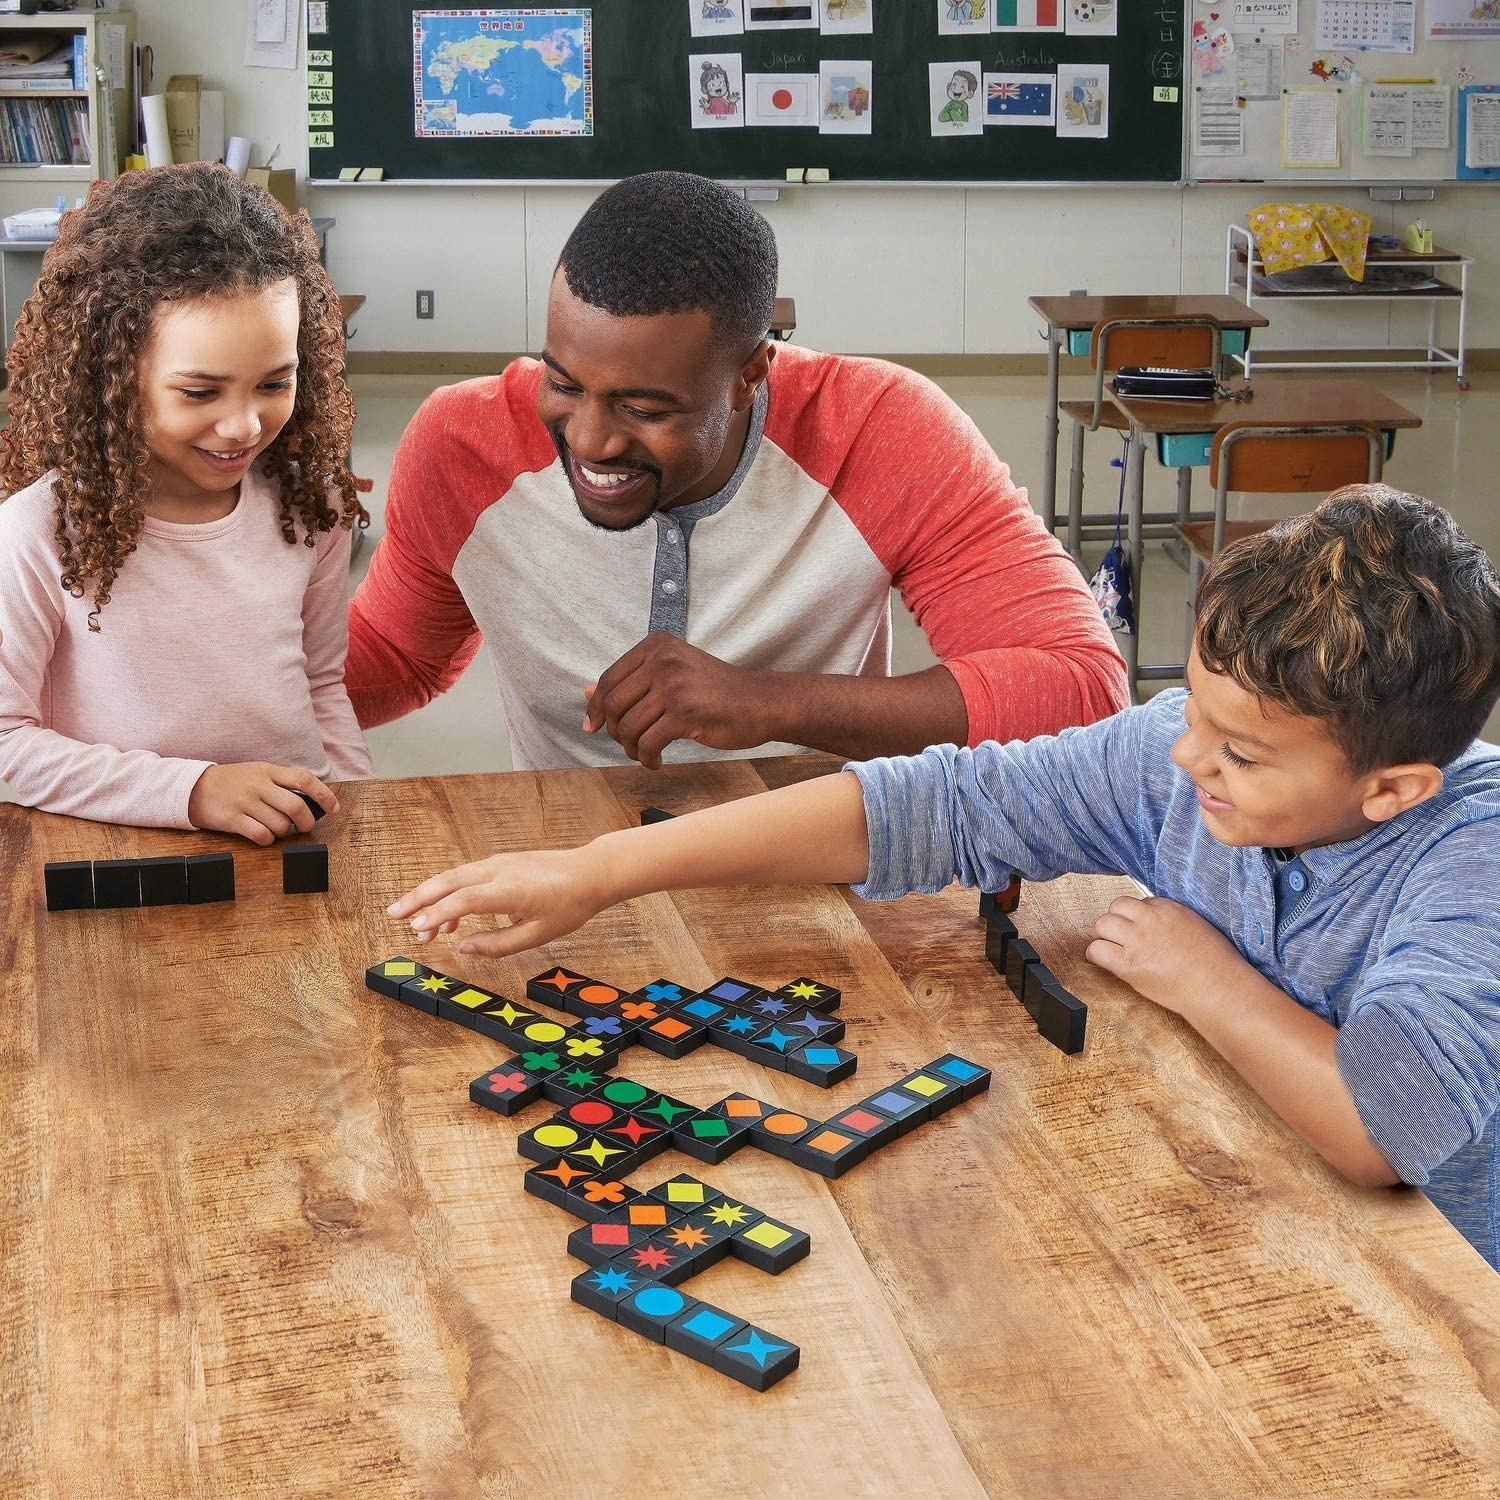 An adult model and two children playing board game with black bricks featuring colorful shapes